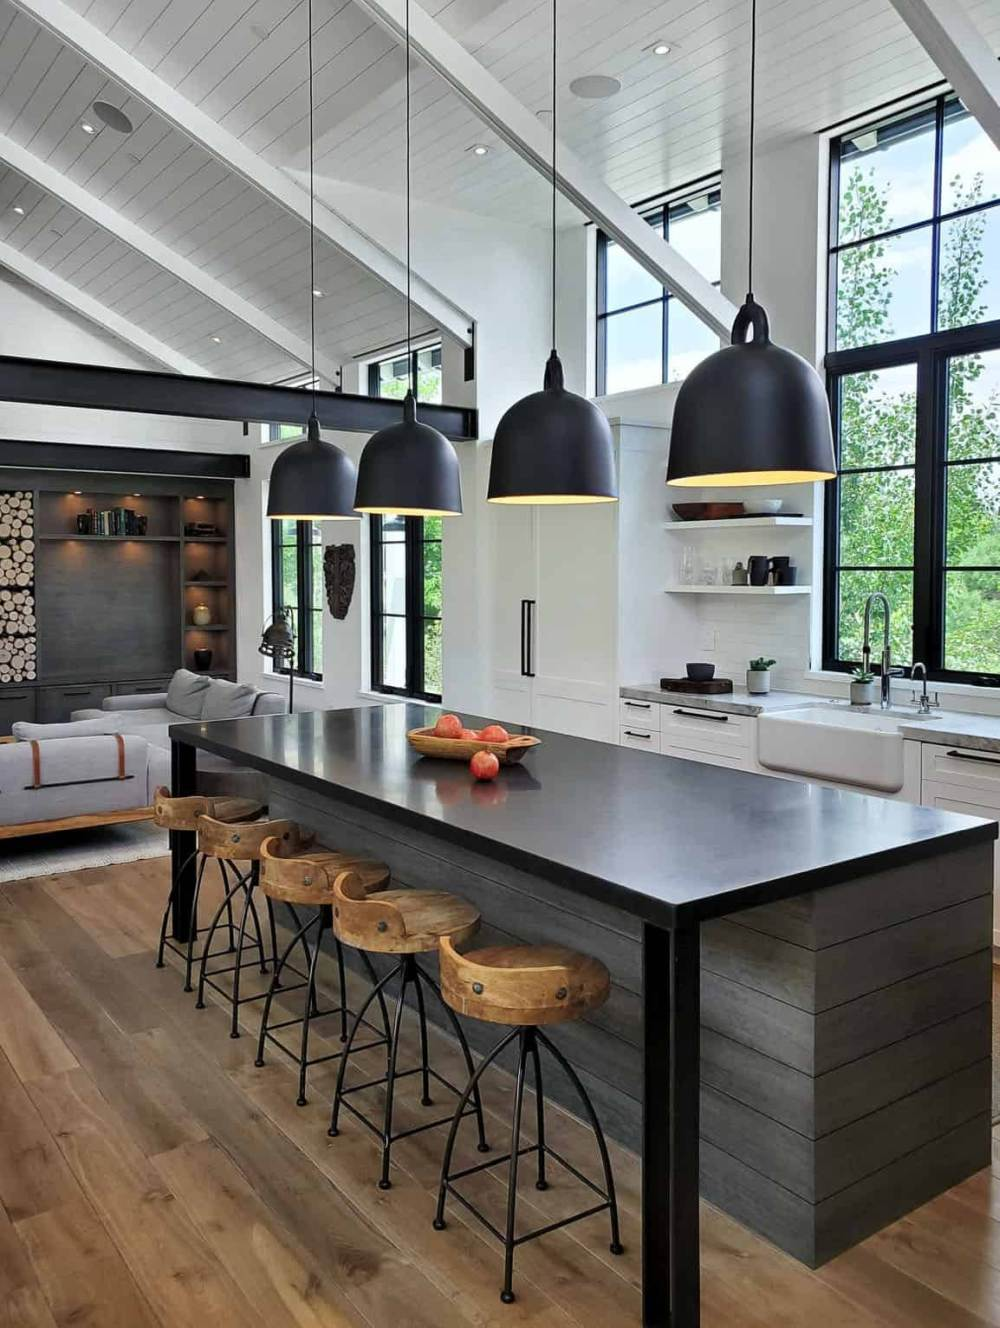 The kitchen island has an extended black granite top that allows it to double as a stylish bar